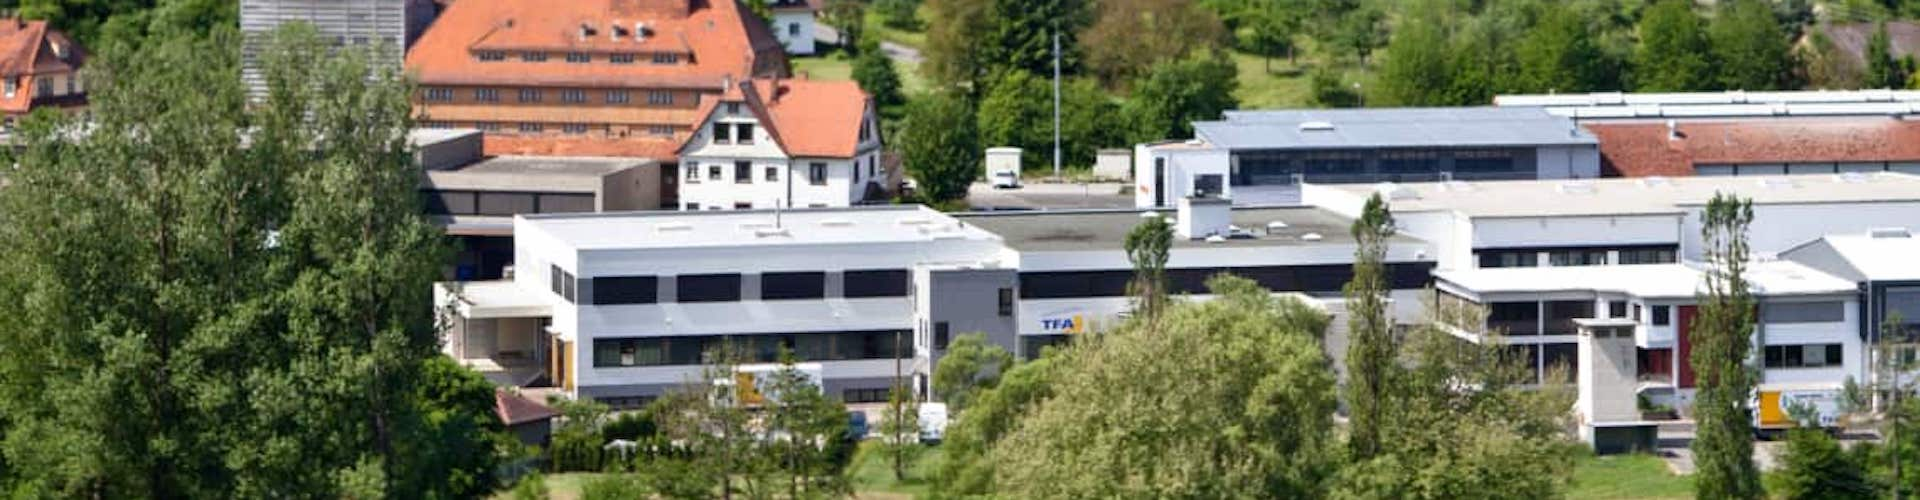 Outdoor view of the TFA Dostmann company building in Reicholzheim in the lovely Tauber valley. The company is located in the middle of the rural area, close to the banks of the Tauber and surrounded by green trees.